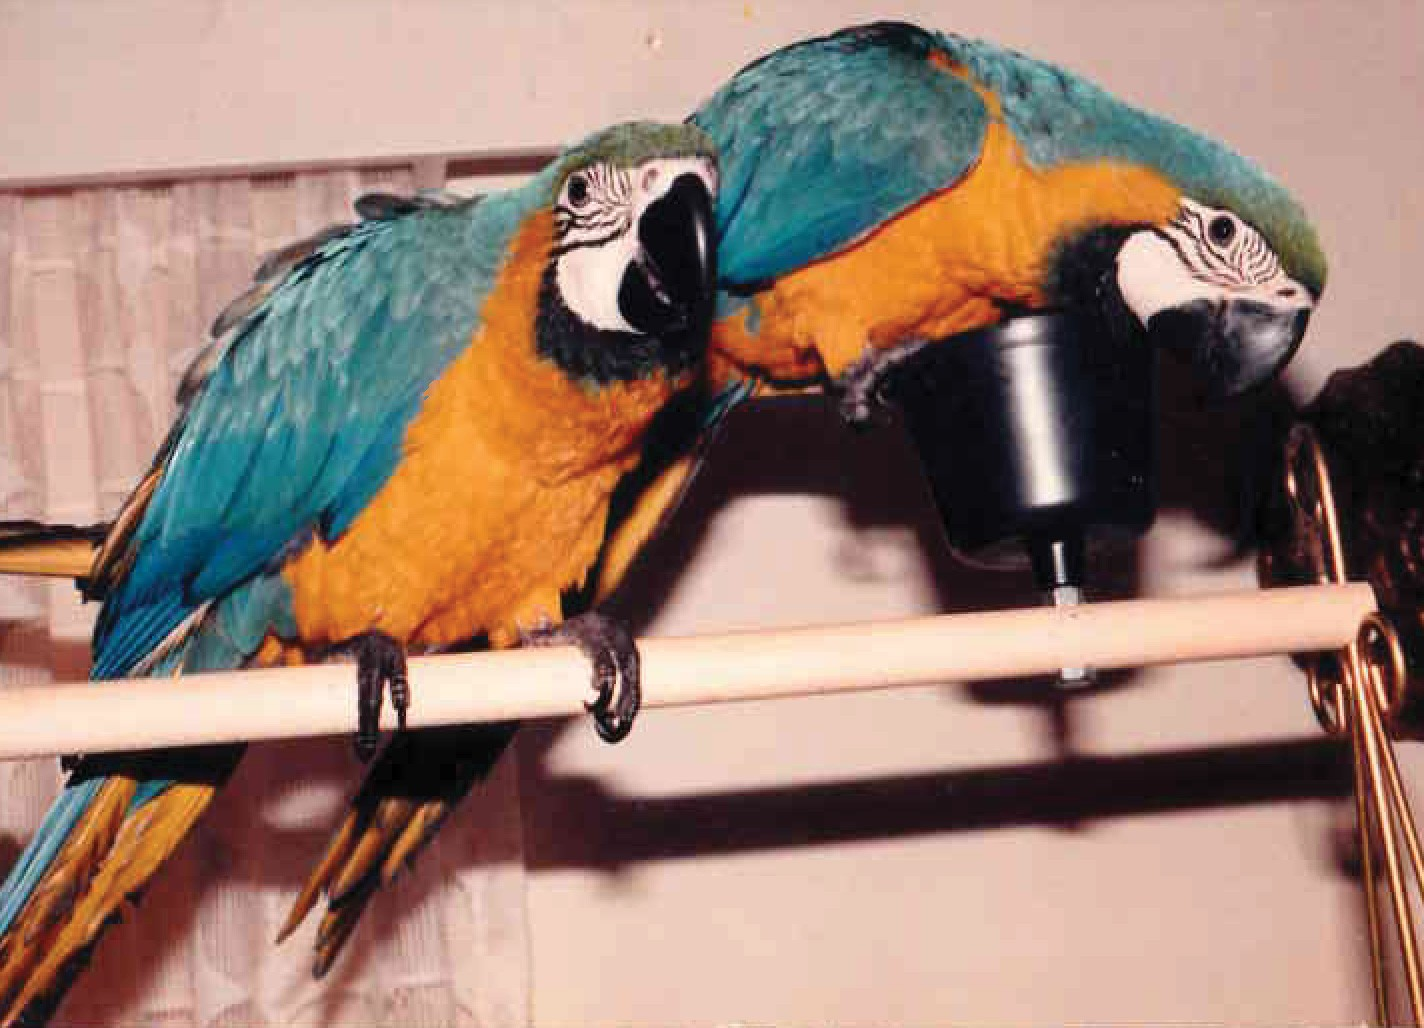 Blue and gold Macaw pets at home on Riverview Blvd.